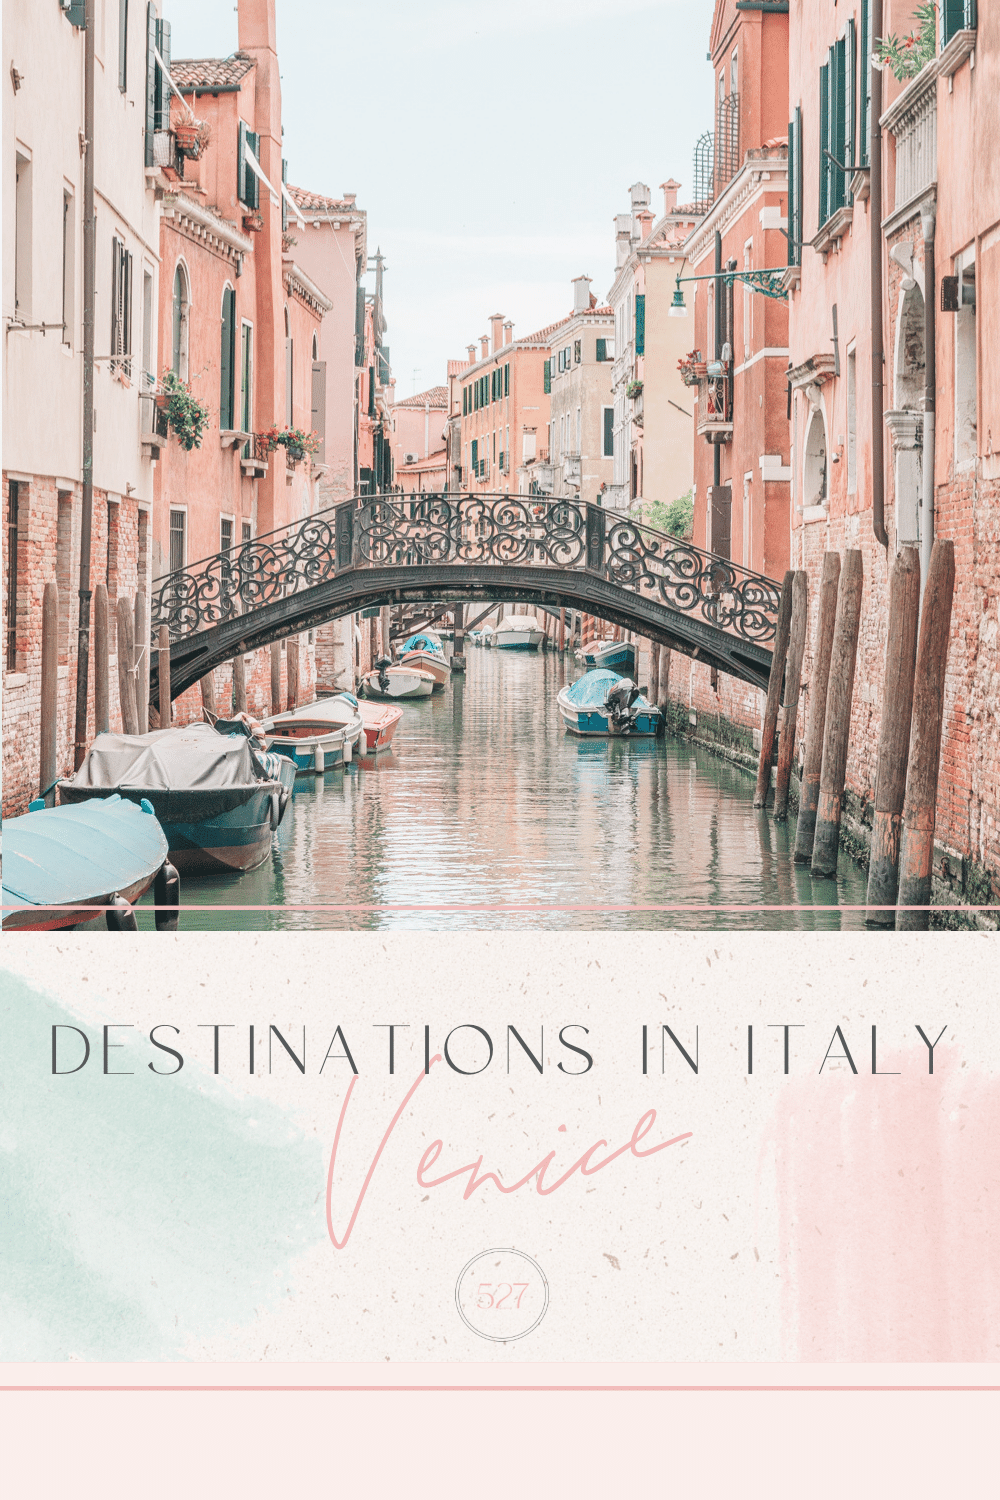 Destinations in Italy Venice Travel Guide